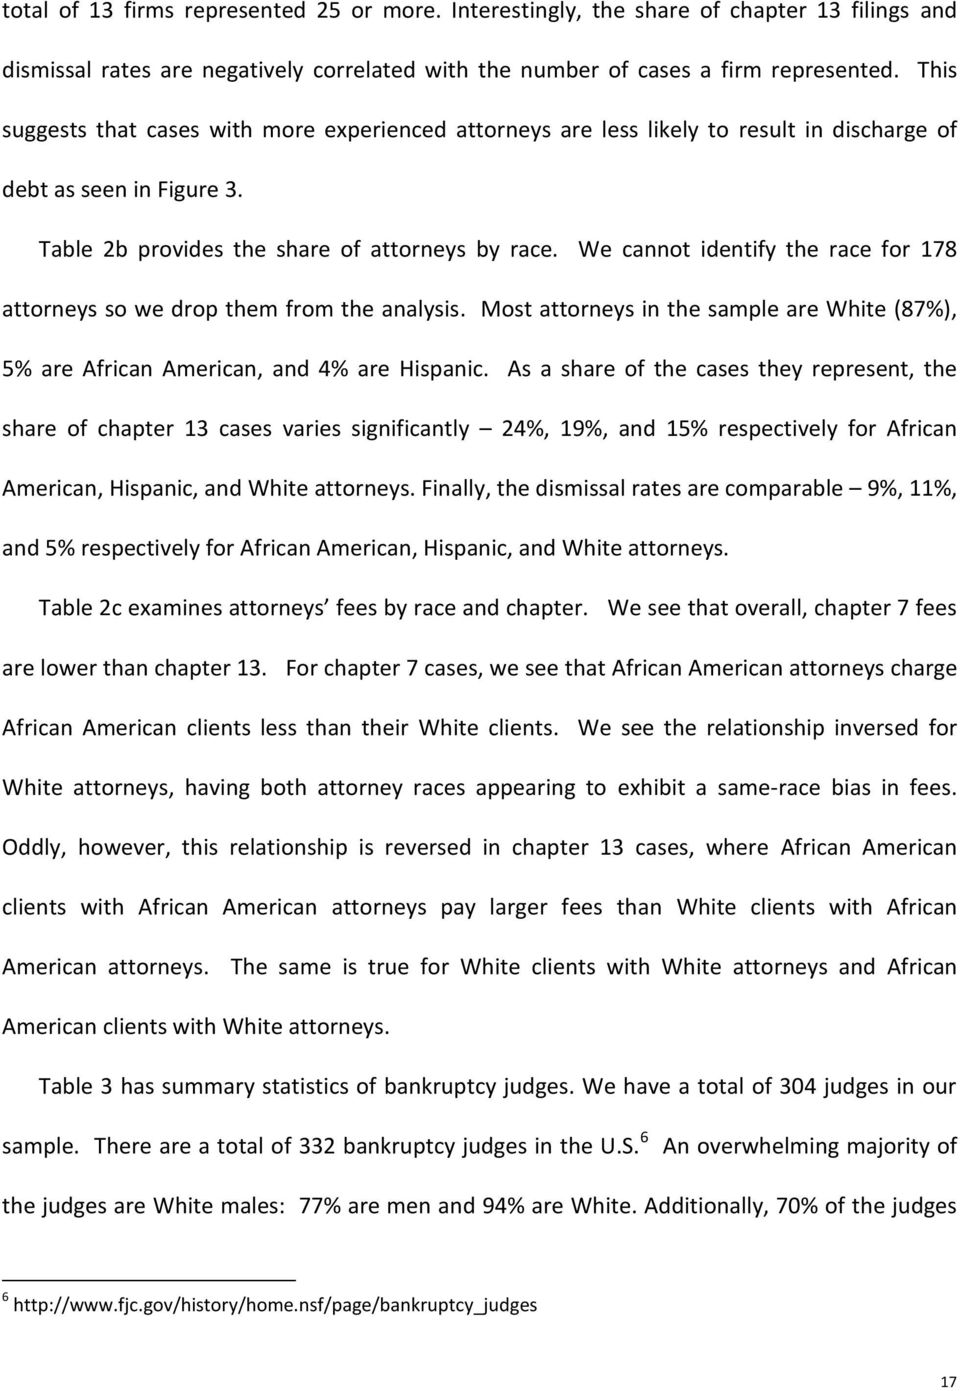 We cannot identify the race for 178 attorneys so we drop them from the analysis. Most attorneys in the sample are White (87%), 5% are African American, and 4% are Hispanic.